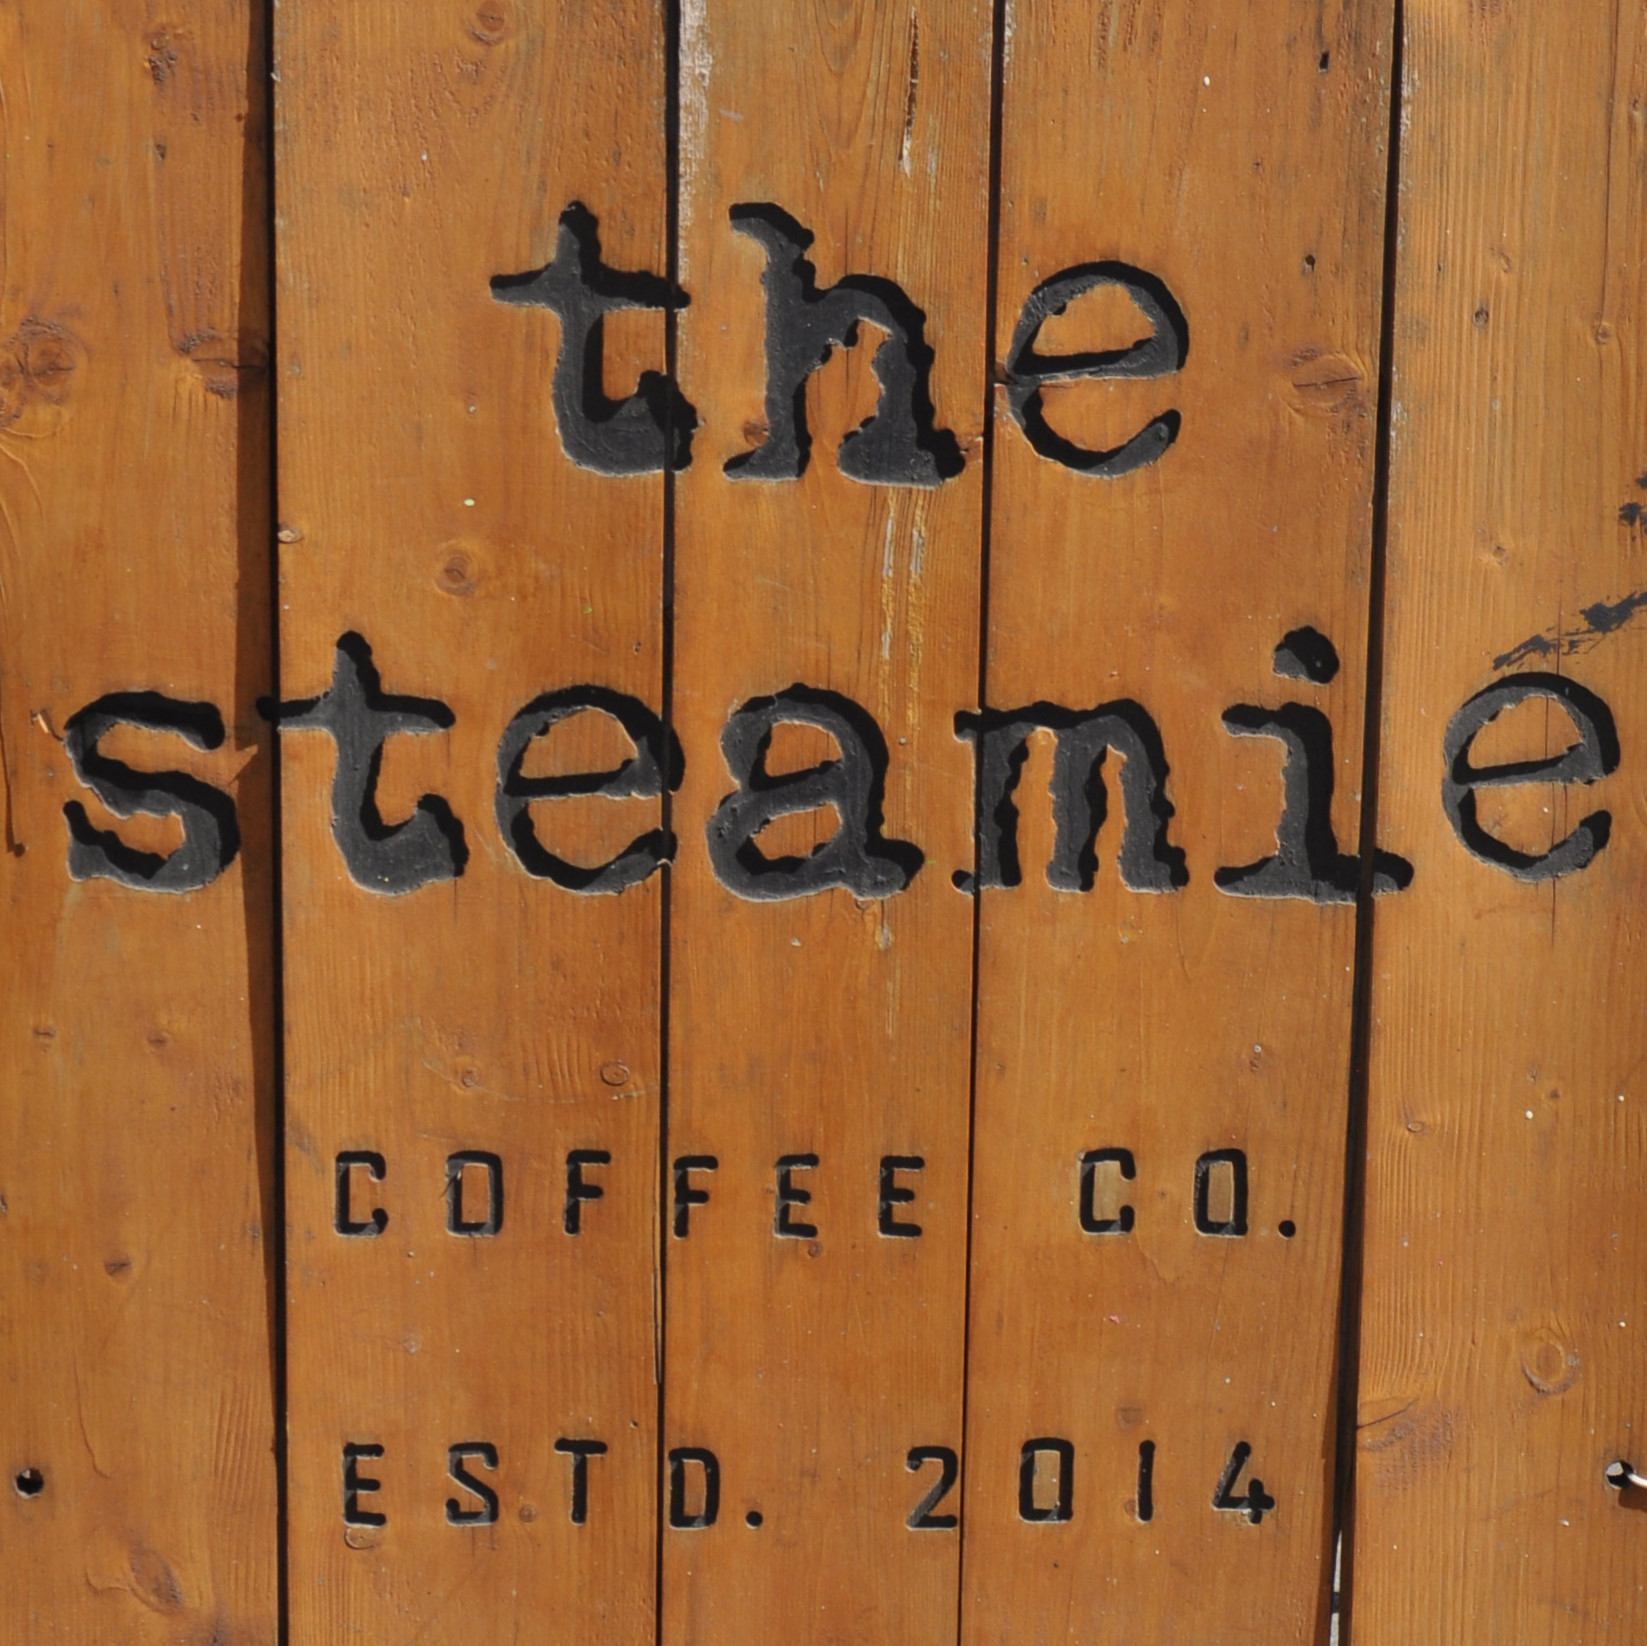 "Detail from the A-board outside The Steamie on Glasgow's Argyle Street on a sunny day in May. Reads: ""The Steamie Coffee Co. Estd. 2014"""